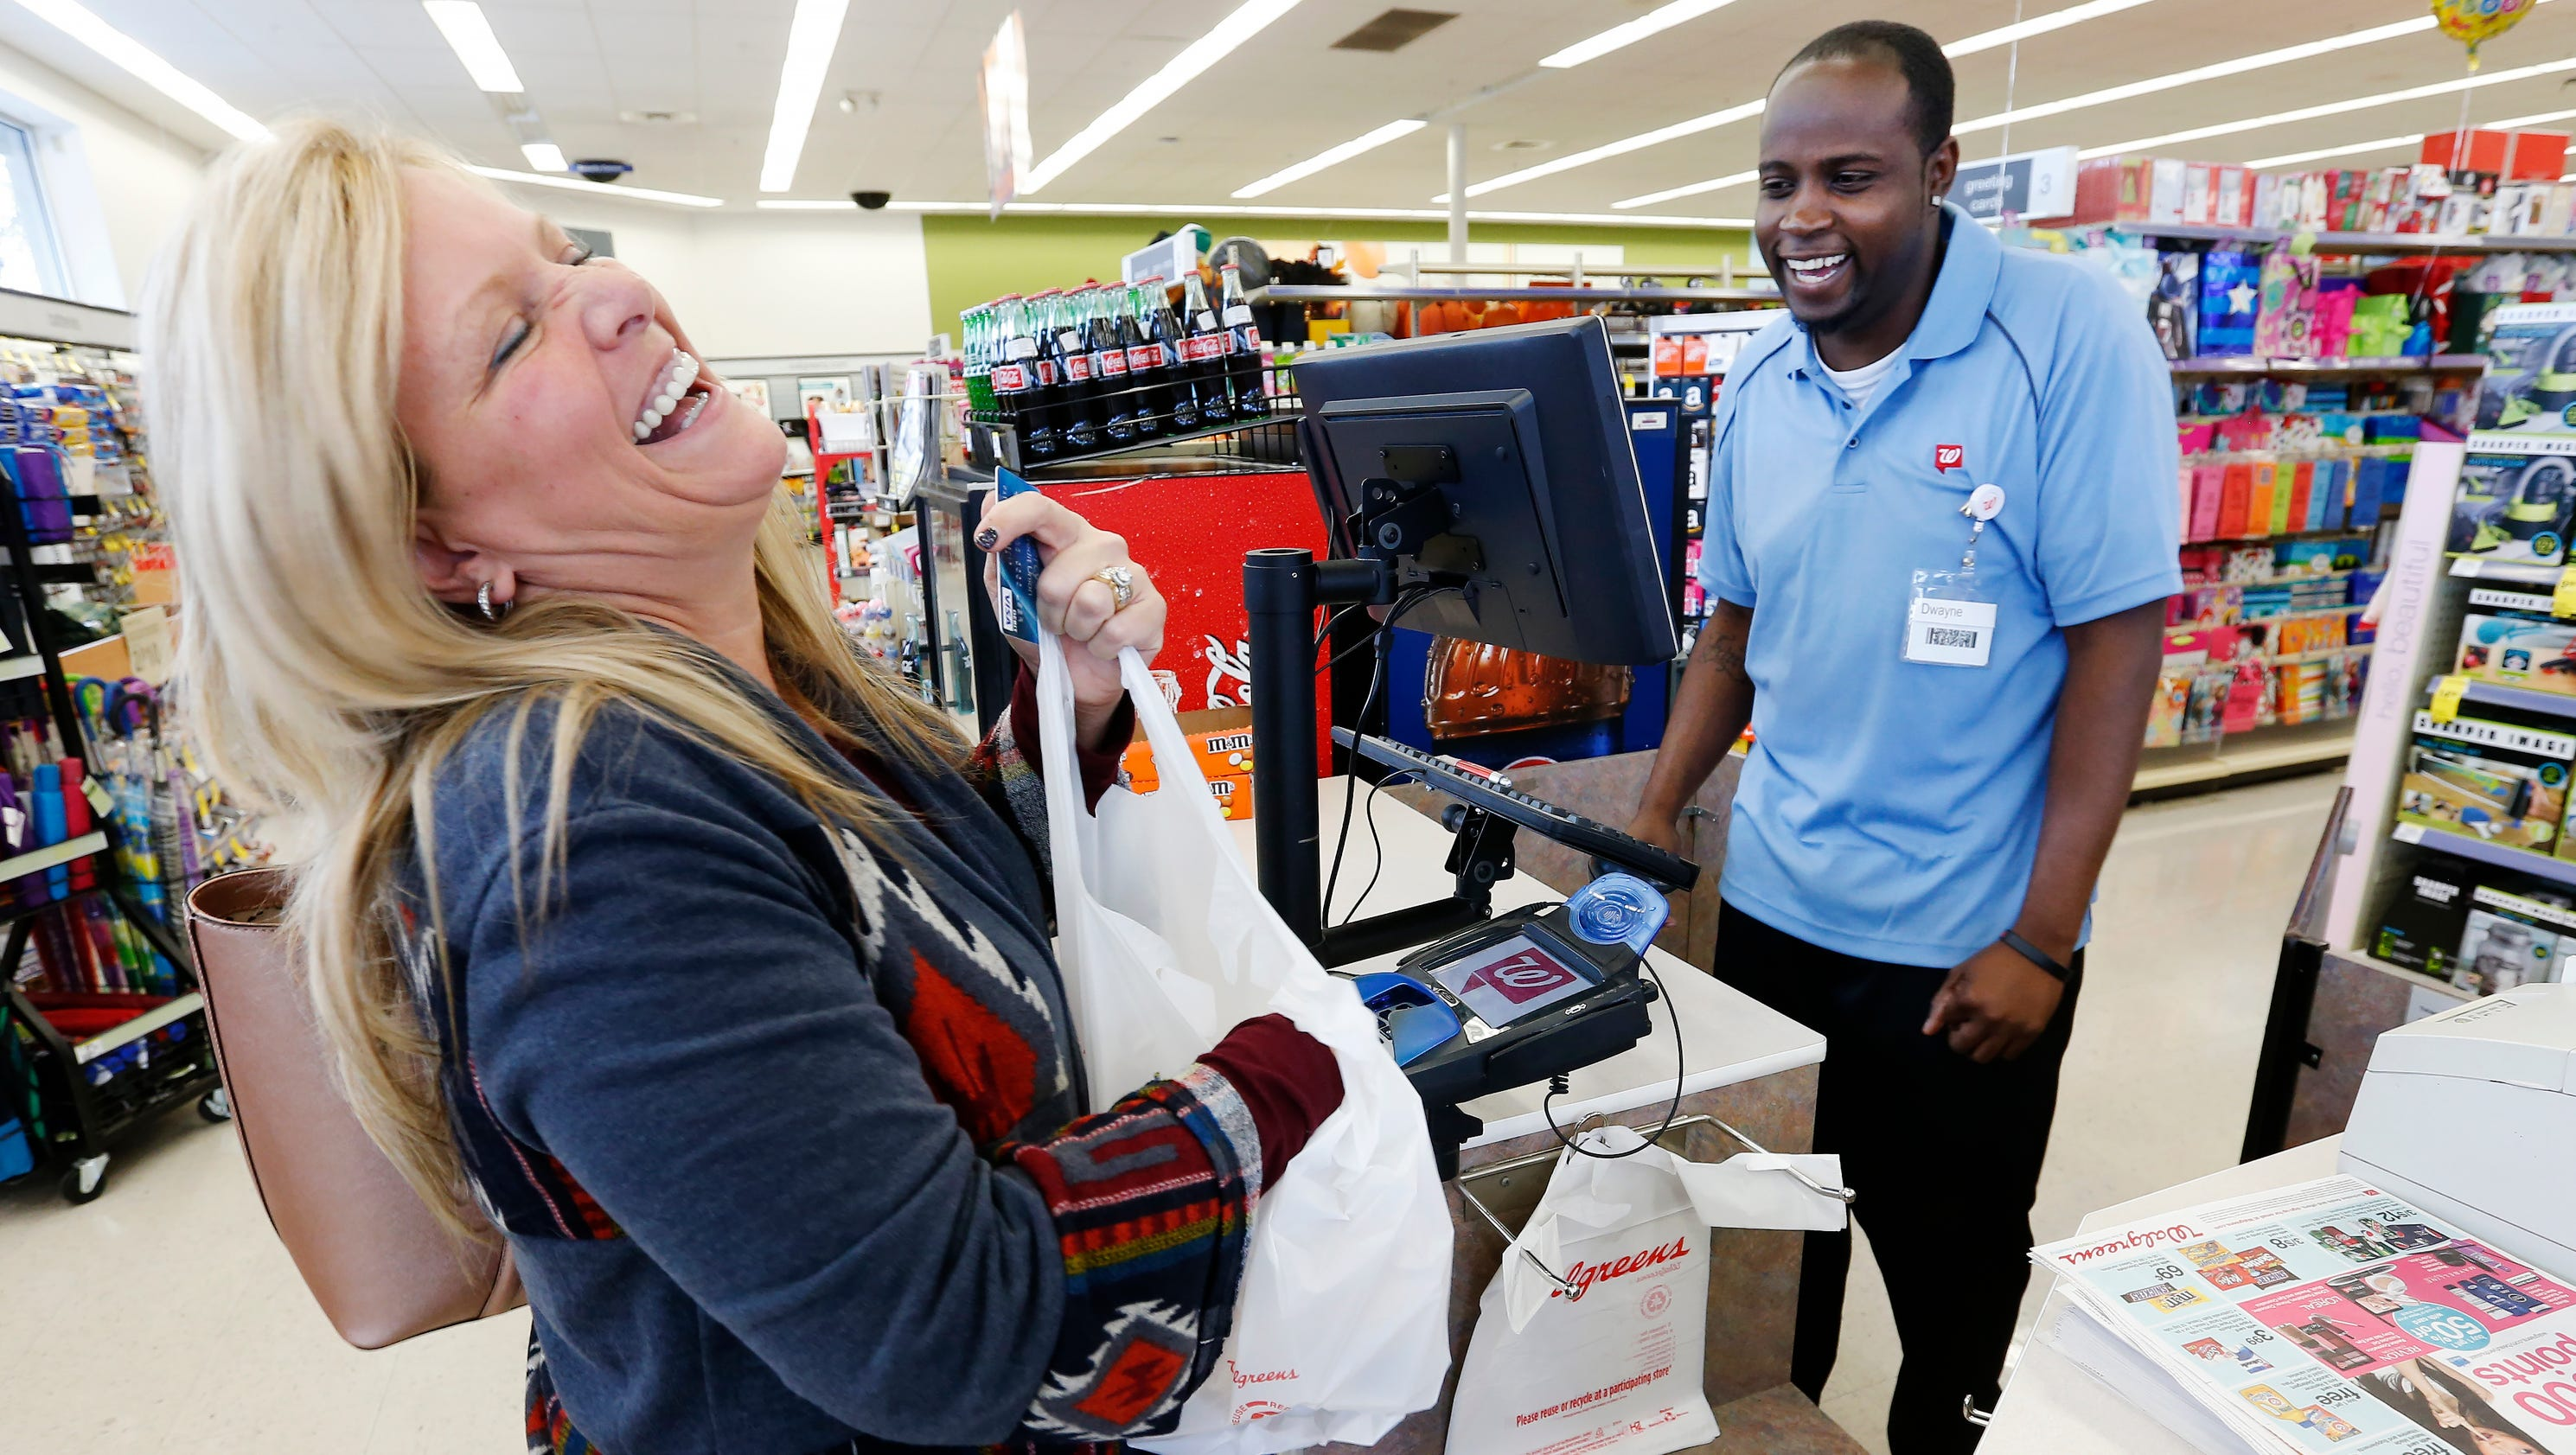 meet walgreens unofficial vp of first impressions